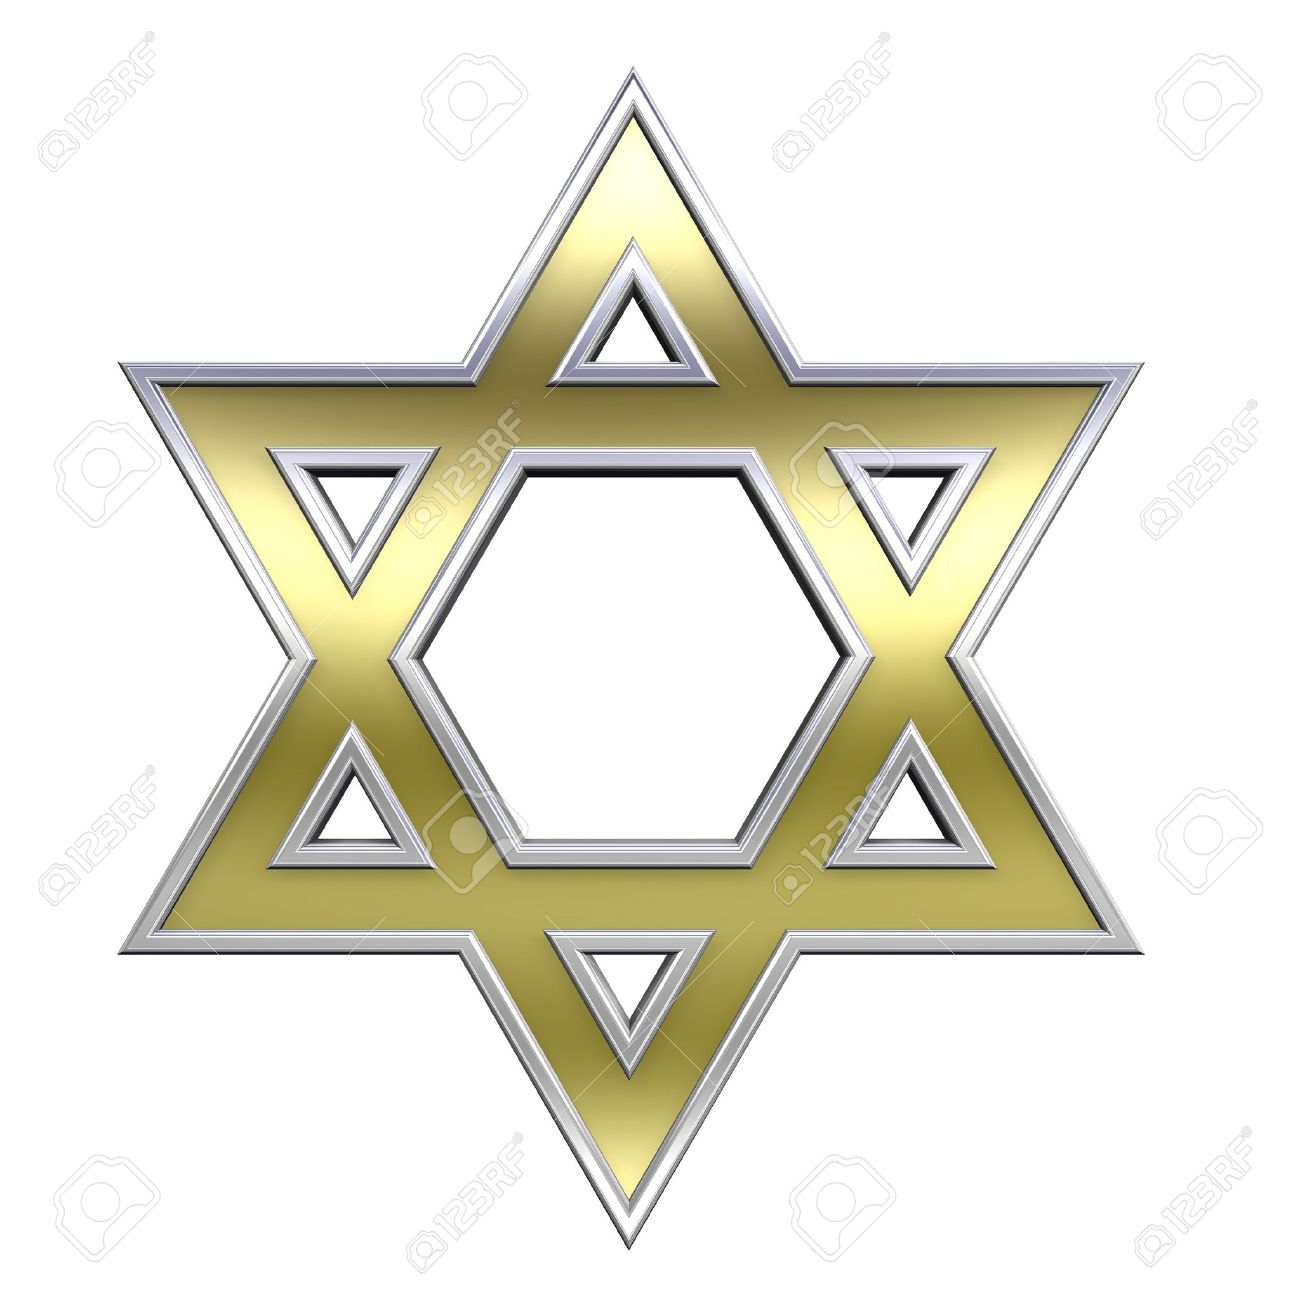 Gold with chrome frame Judaism religious symbol - star of david isolated on white. Computer generated 3D photo rendering. Stock Photo - 5056721